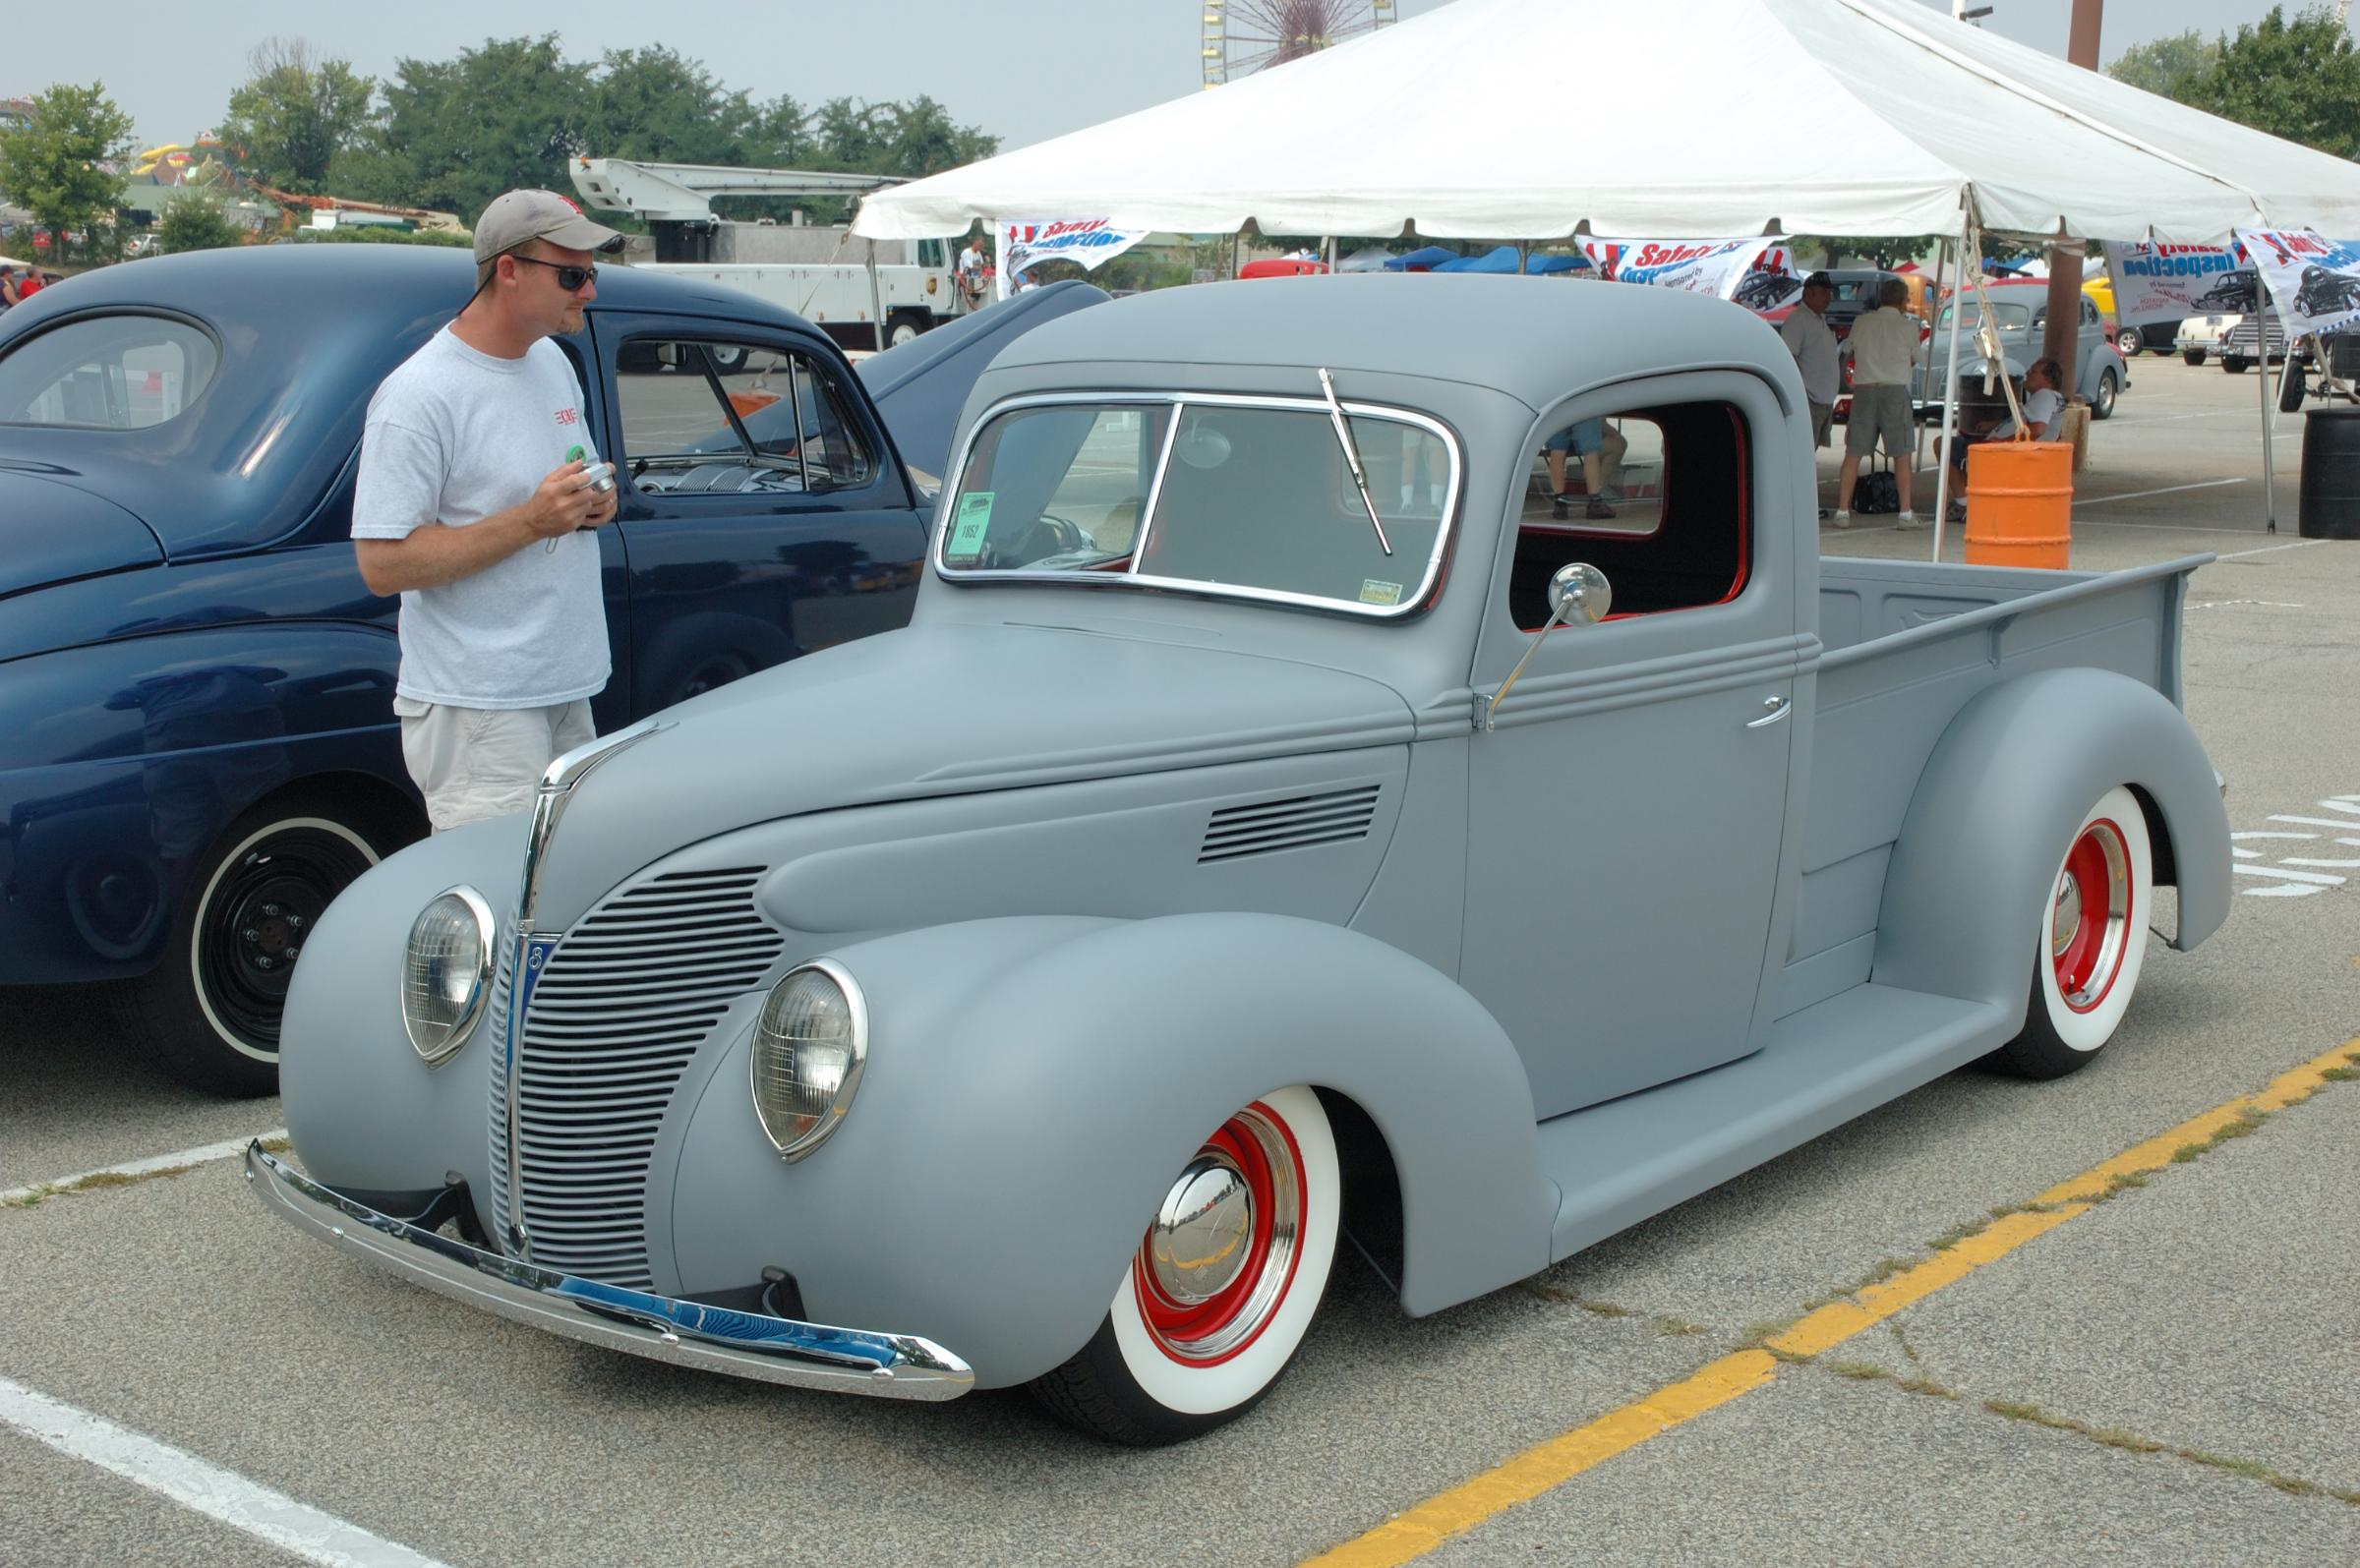 Dscf X in addition D Rat Rods Img likewise Chevy Pickup Custom Truck besides  furthermore Maxresdefault. on 1940 chevy coe truck